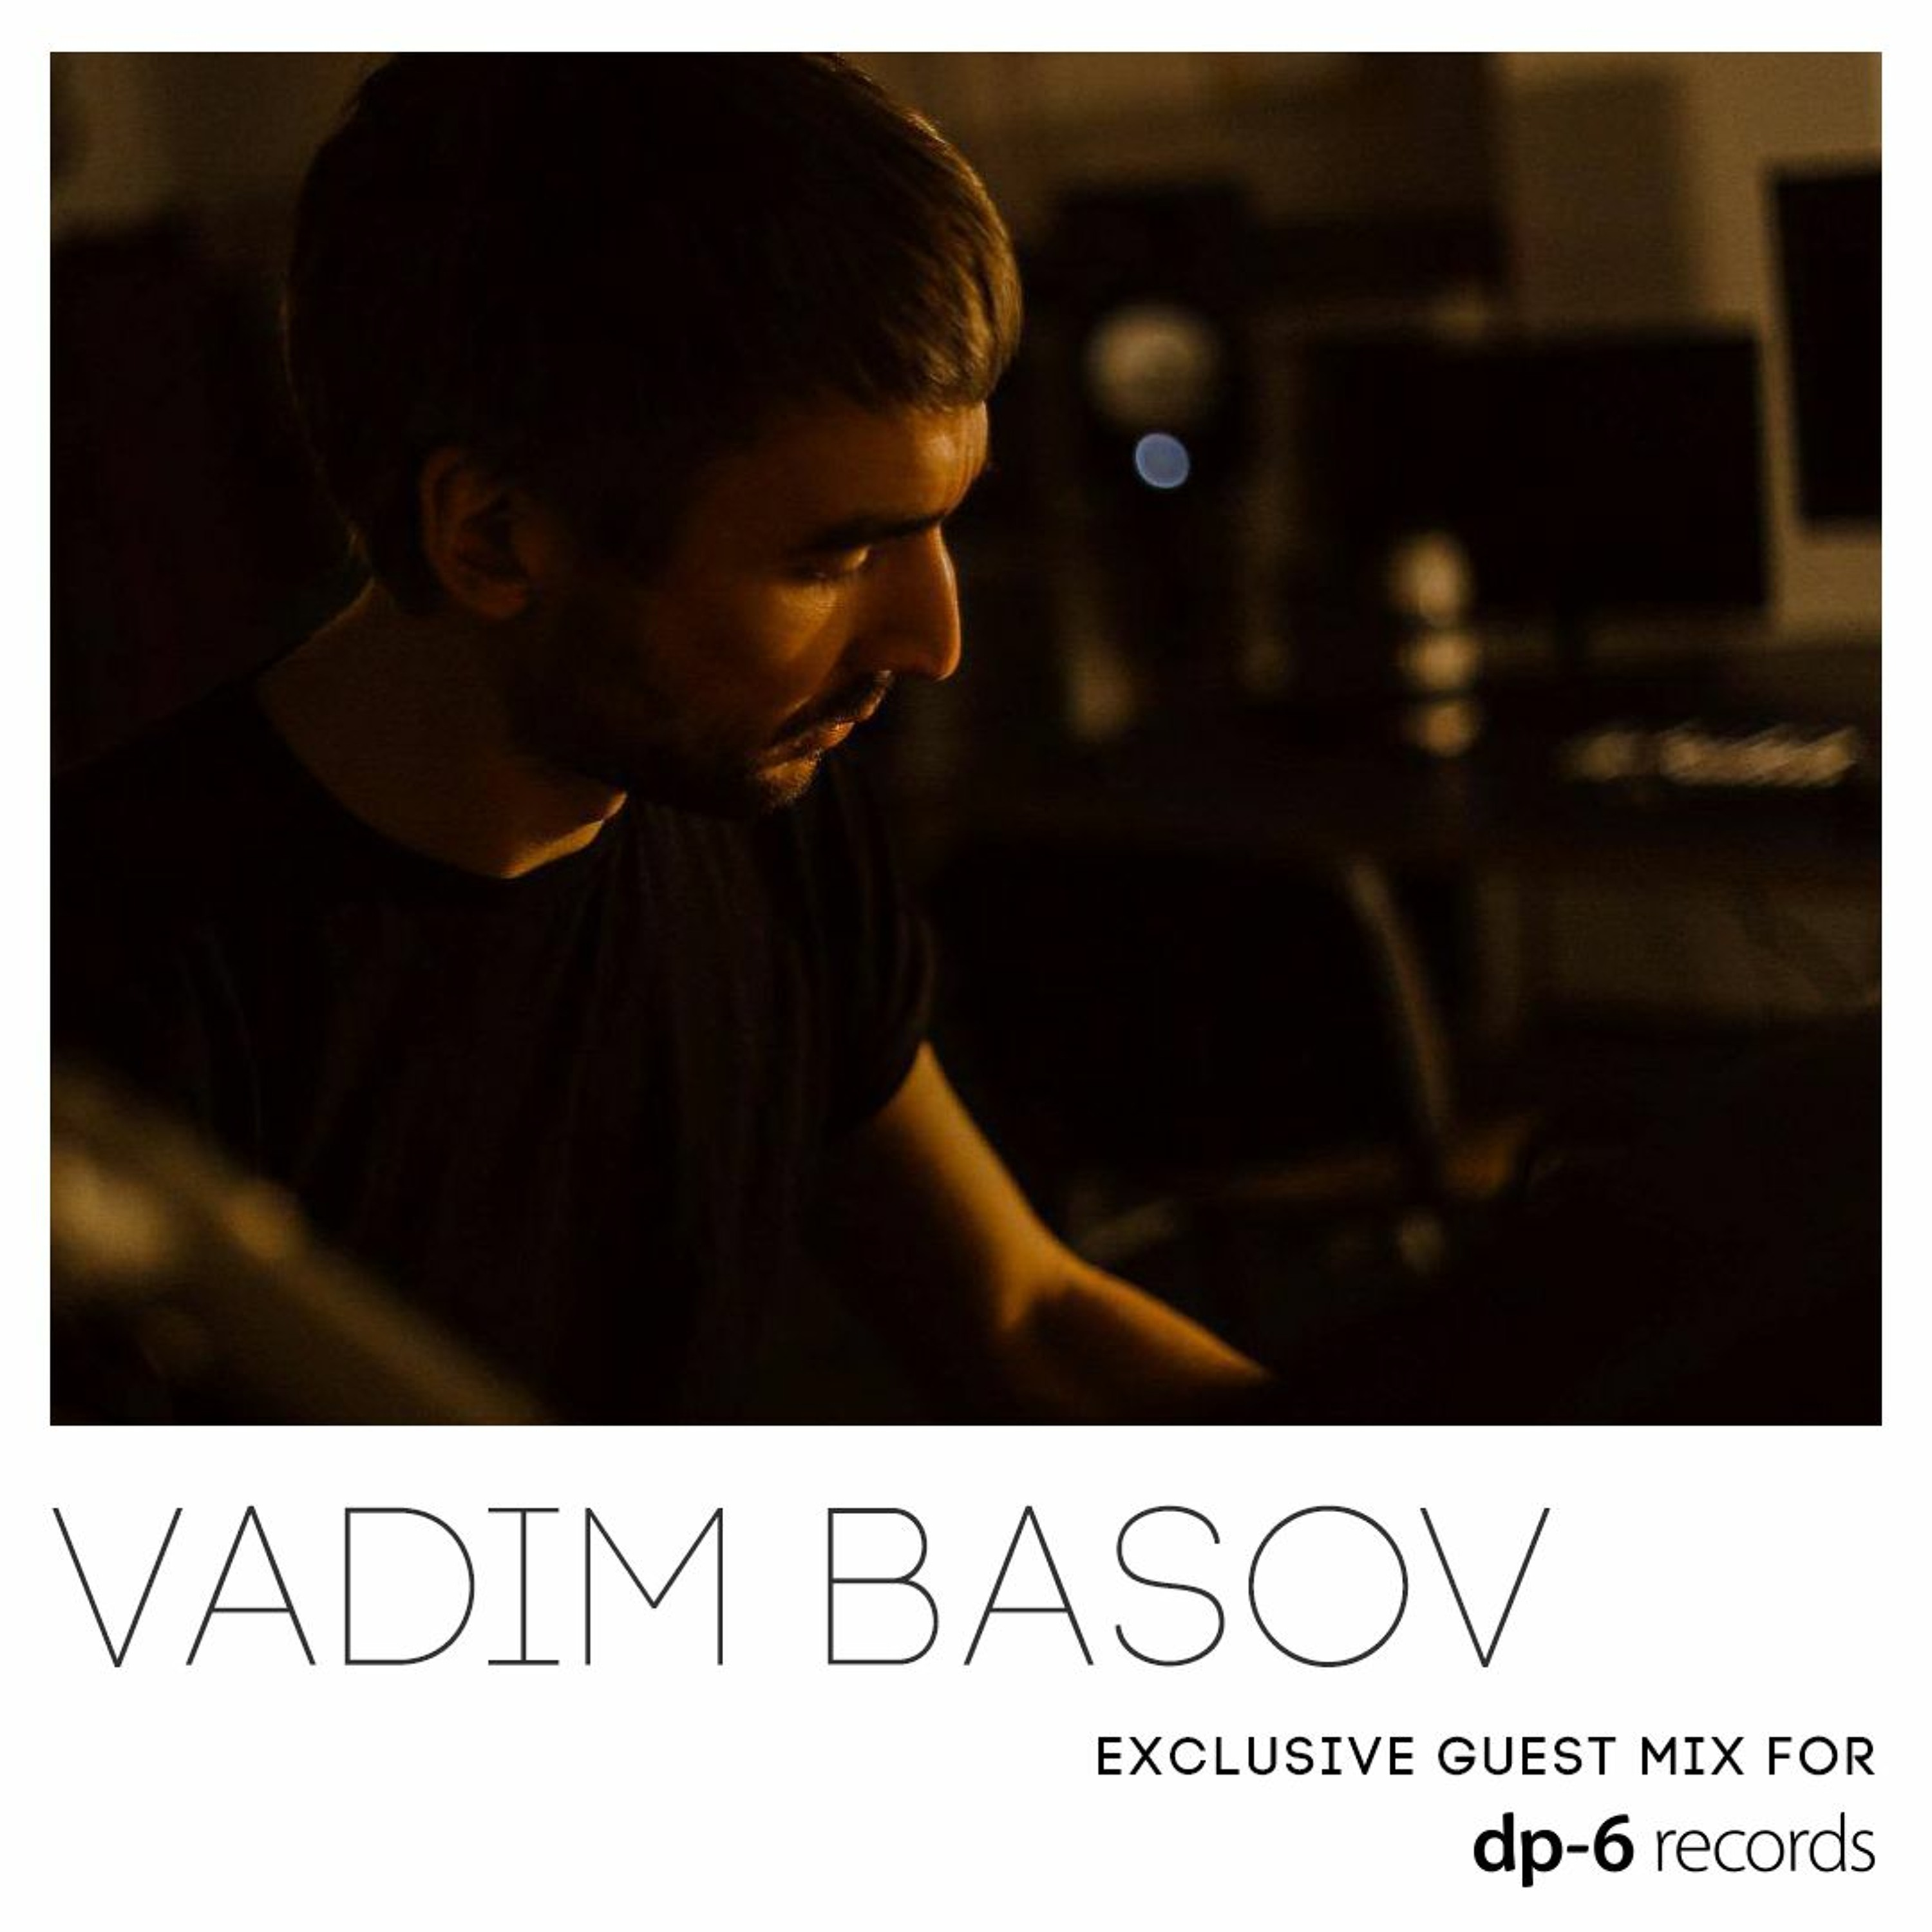 Vadim Basov - Exclusive guest mix for DP-6 Records